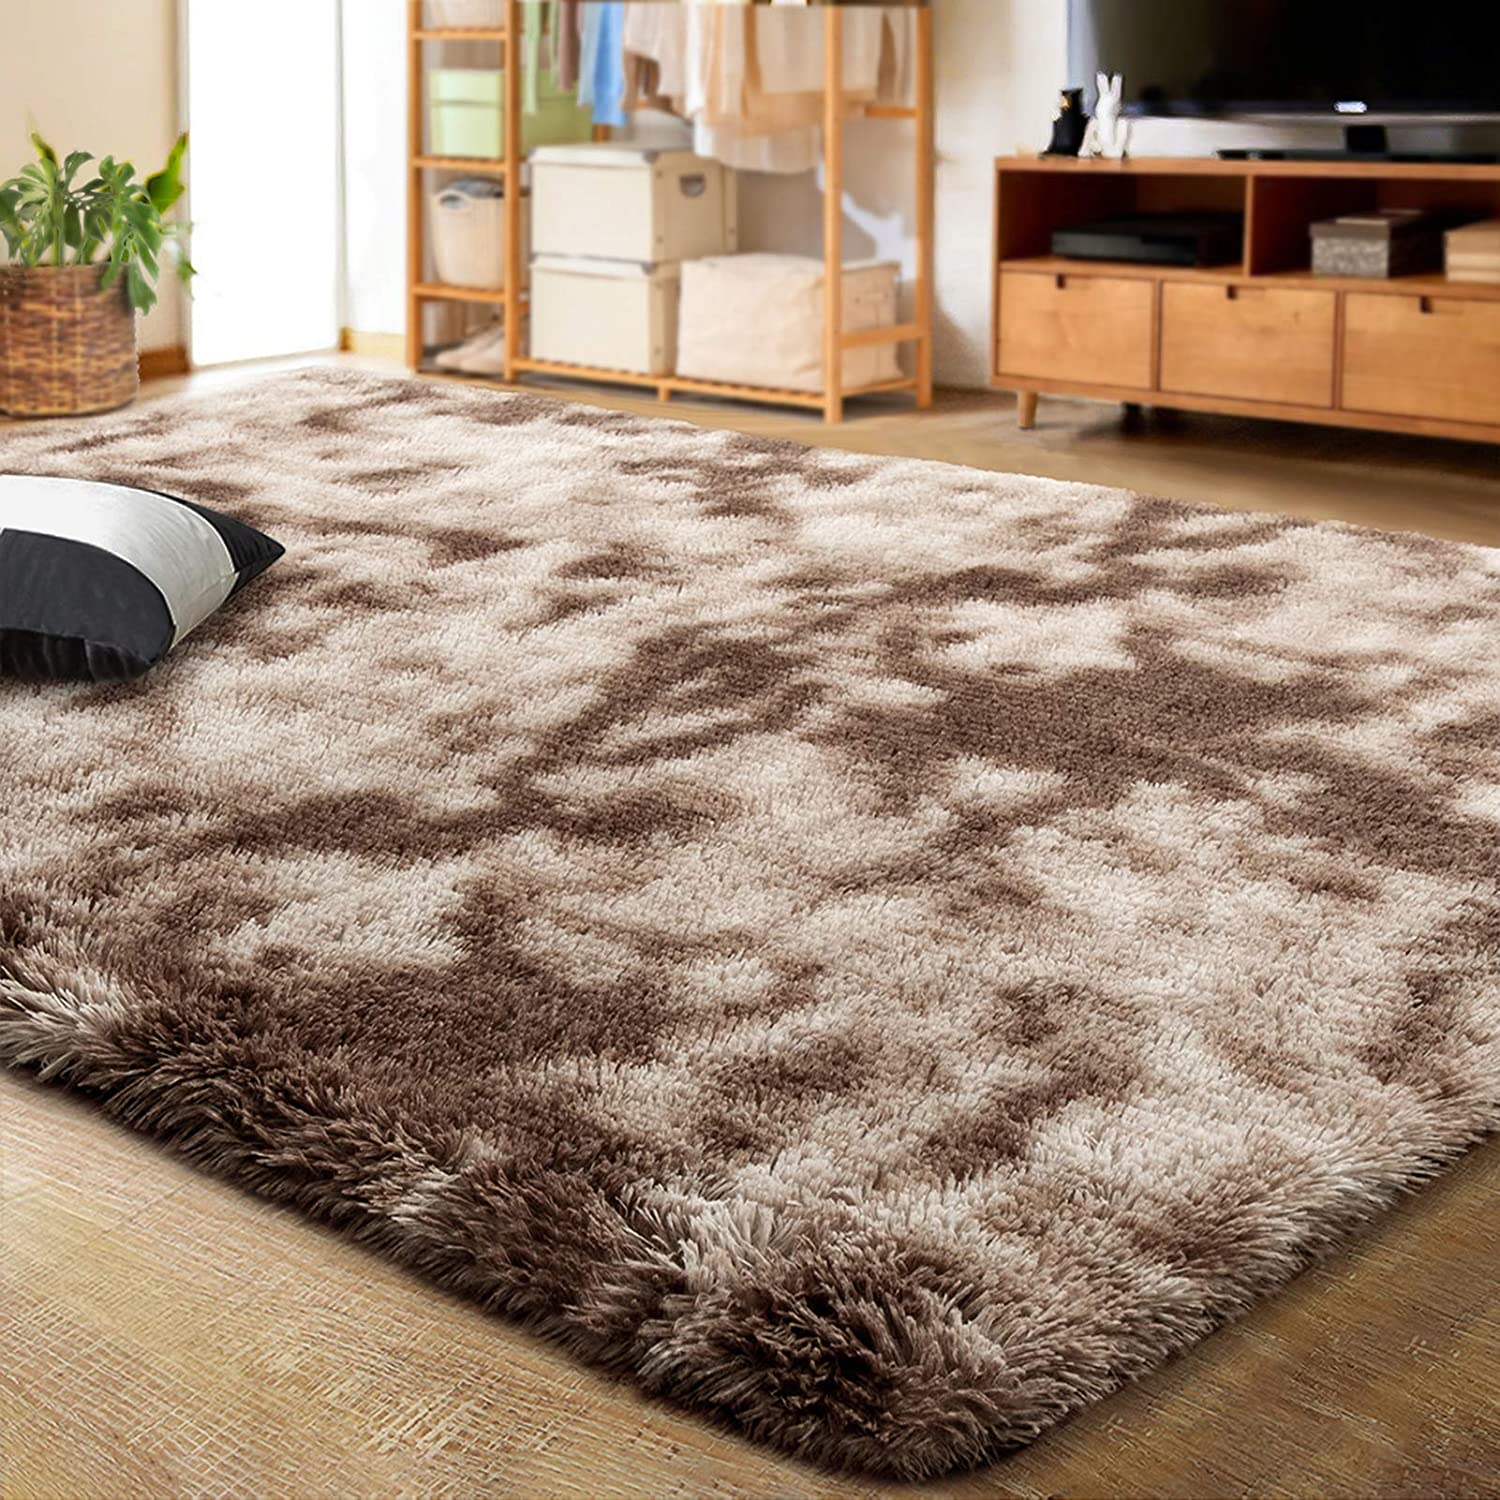 LOCHAS Luxury Velvet Shag Area Rug Modern Indoor Fluffy Rugs, Extra Comfy and Soft Carpet, Abstract Accent Rugs for Bedroom Living Room Dorm Home Girls Kids, 4x5.9 Feet Brown/Ivory